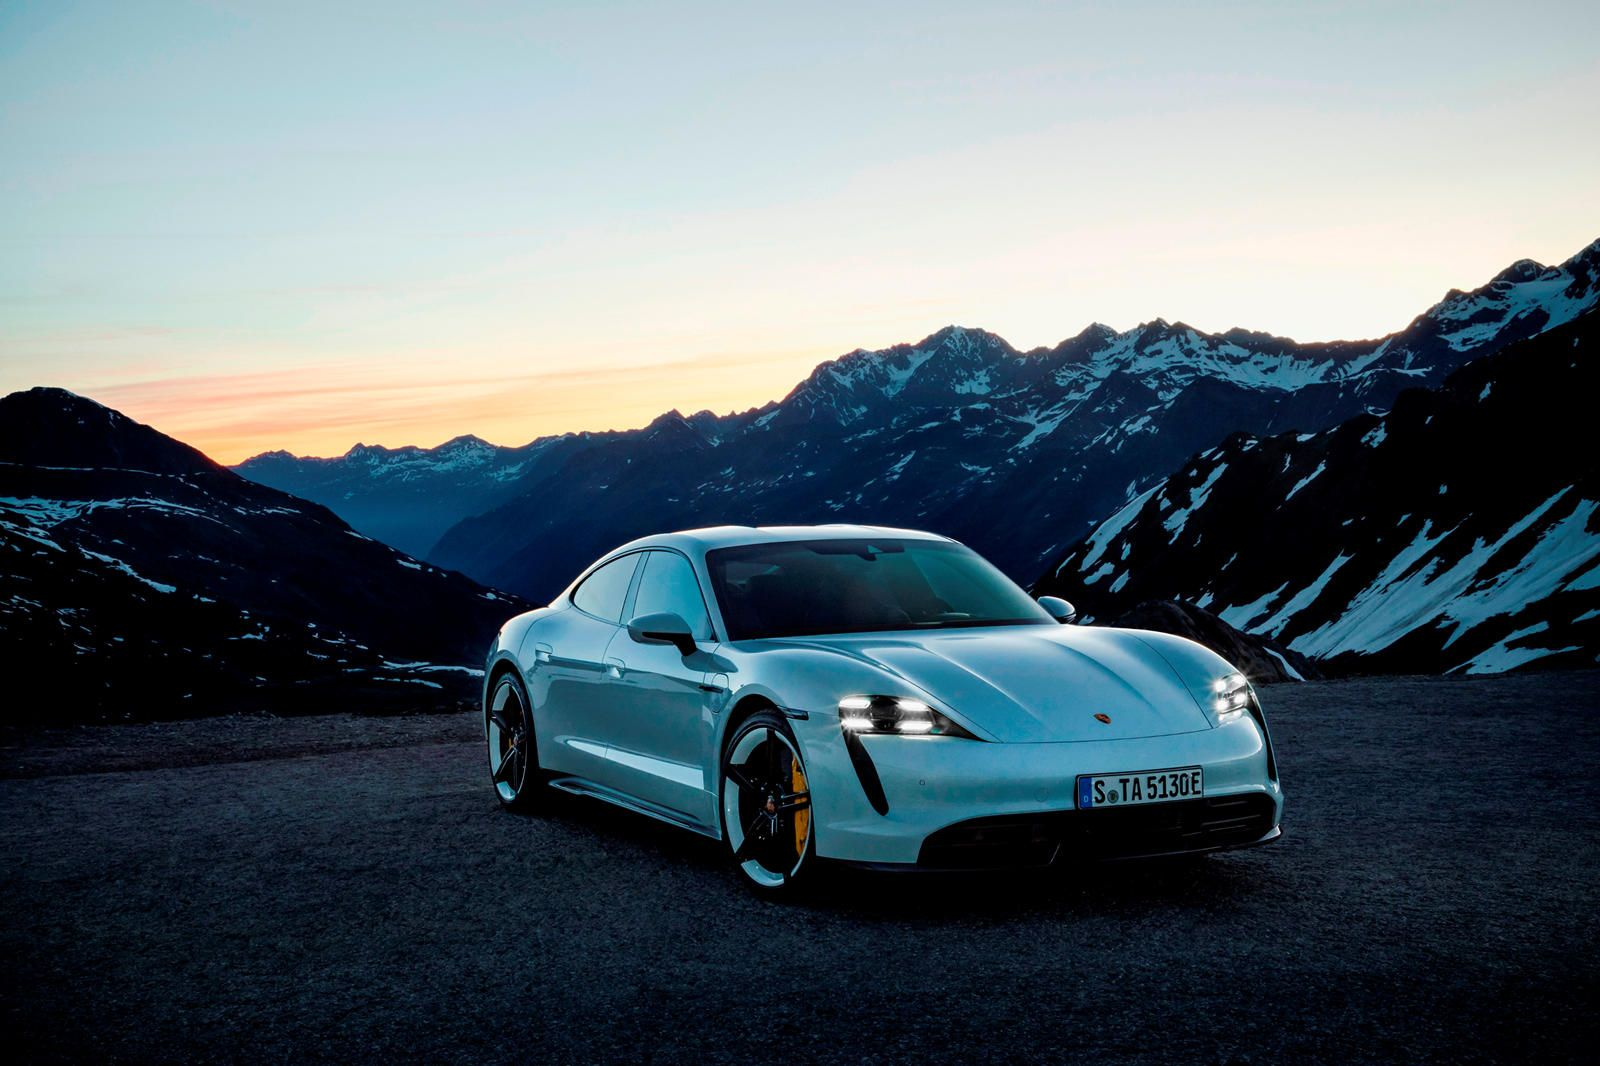 Porsche Taycan To Star In 2020 Super Bowl Commercial Porsche Hasn T Run A Super Bowl Commercial Since 1997 Porsche Taycan Electric Sports Car Porsche